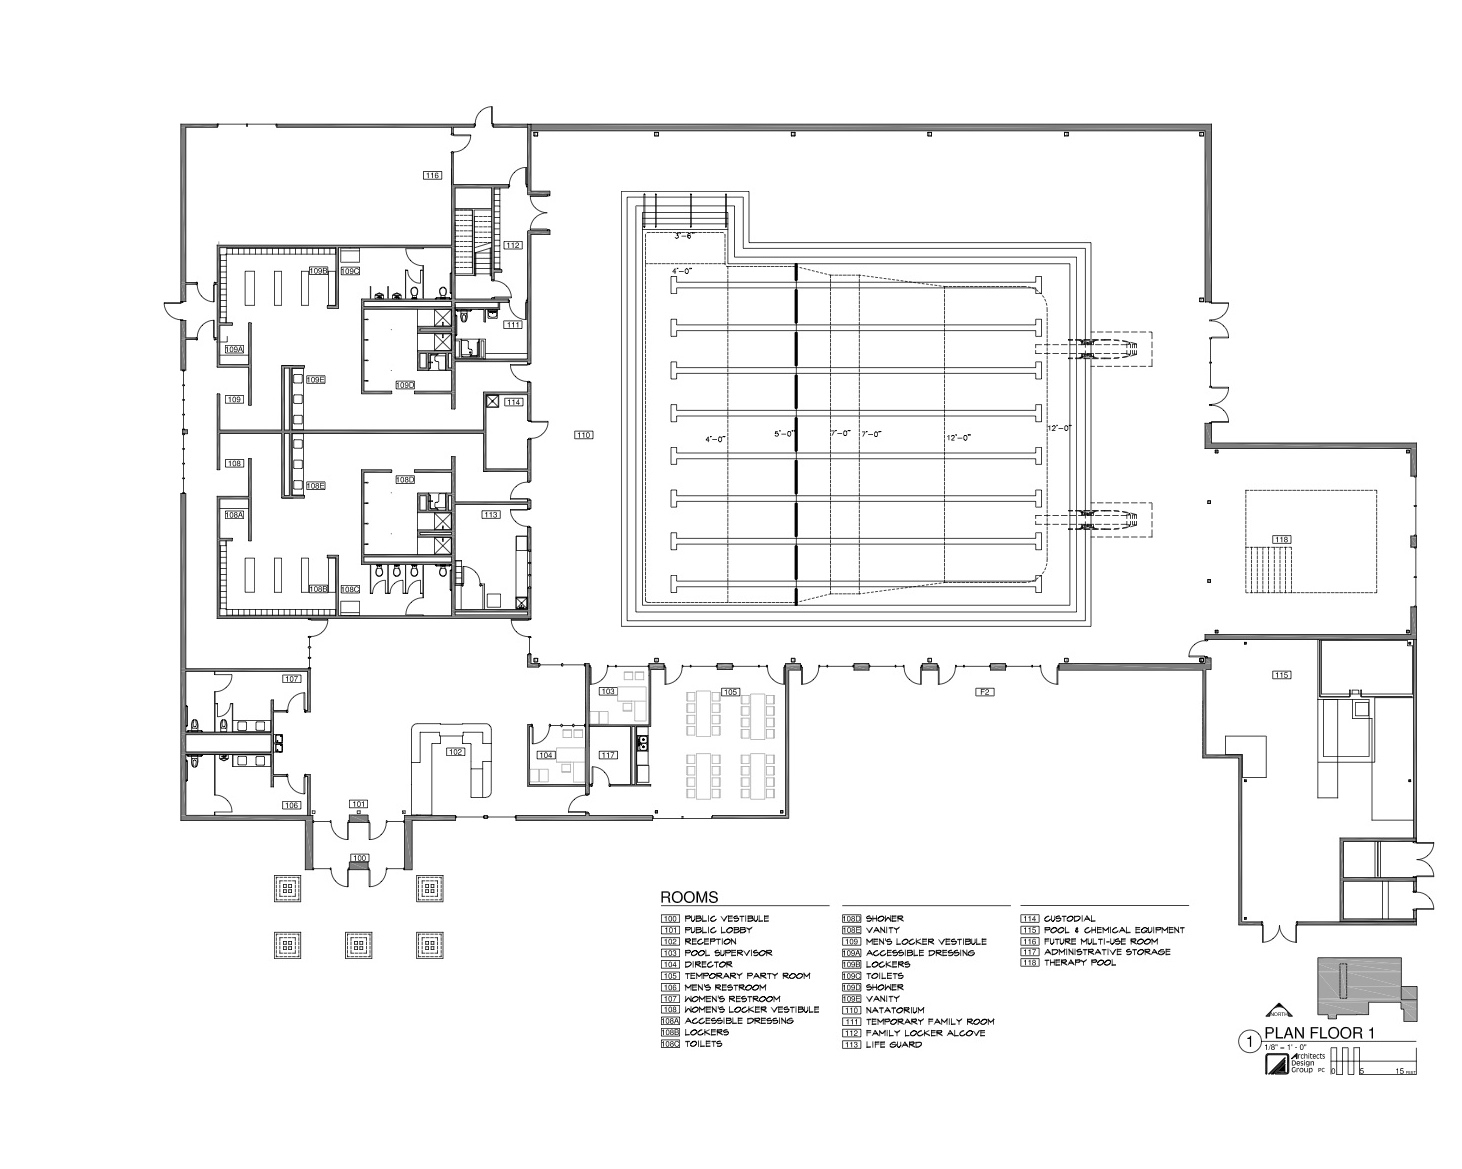 Facility Layout Mission Valley Aquatics